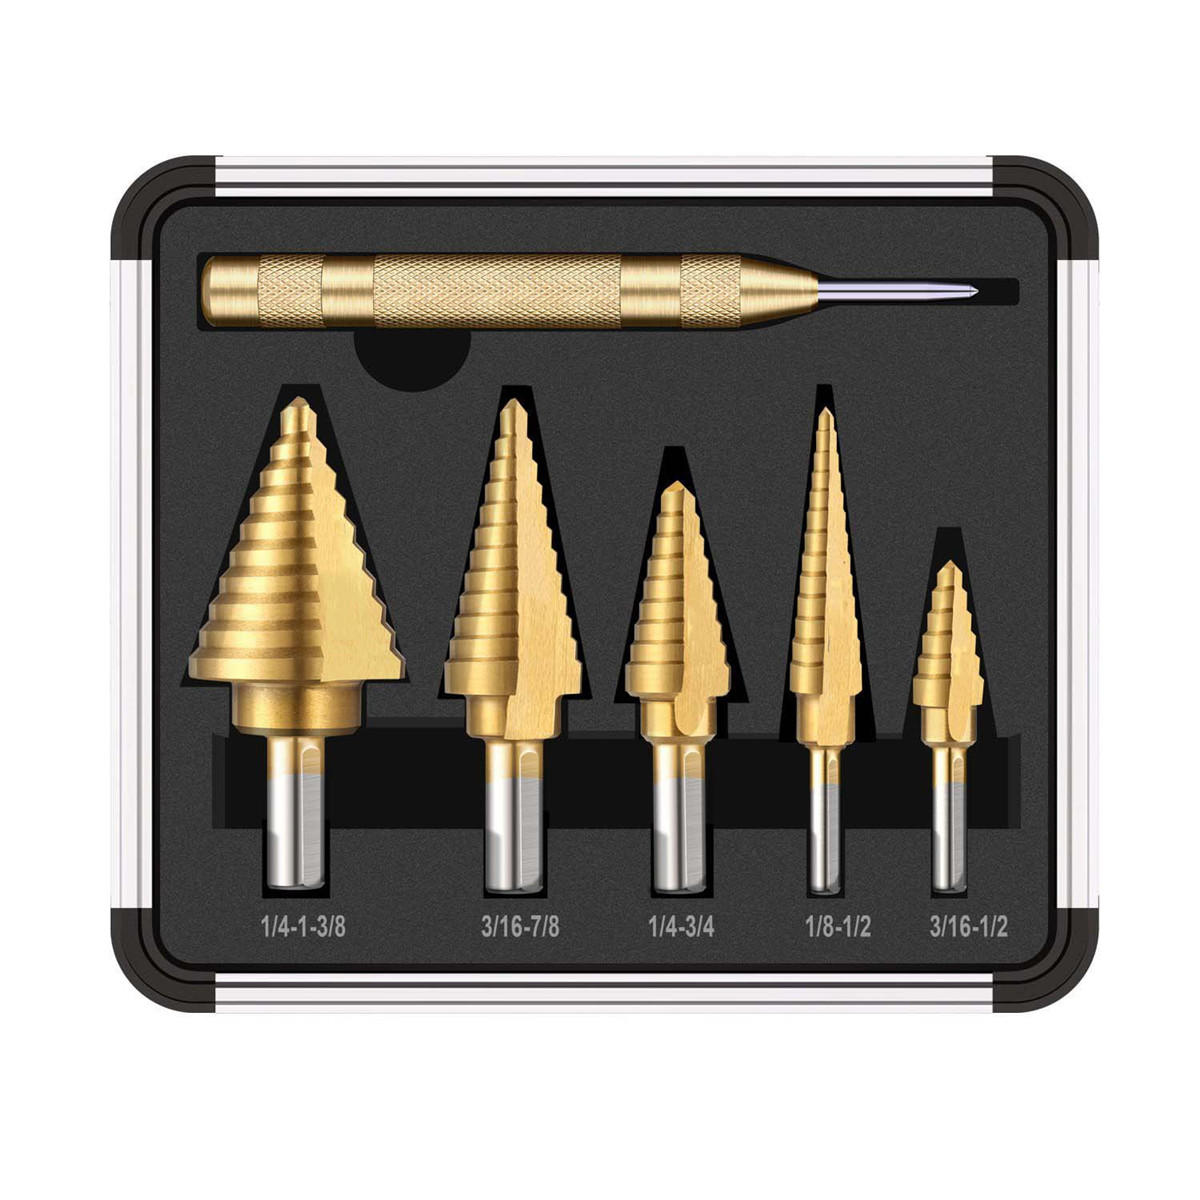 6pcs HSS Titanium Coated Step Drill Bit With Center Punch Drill Set Hole Cutter Drilling Tool COD